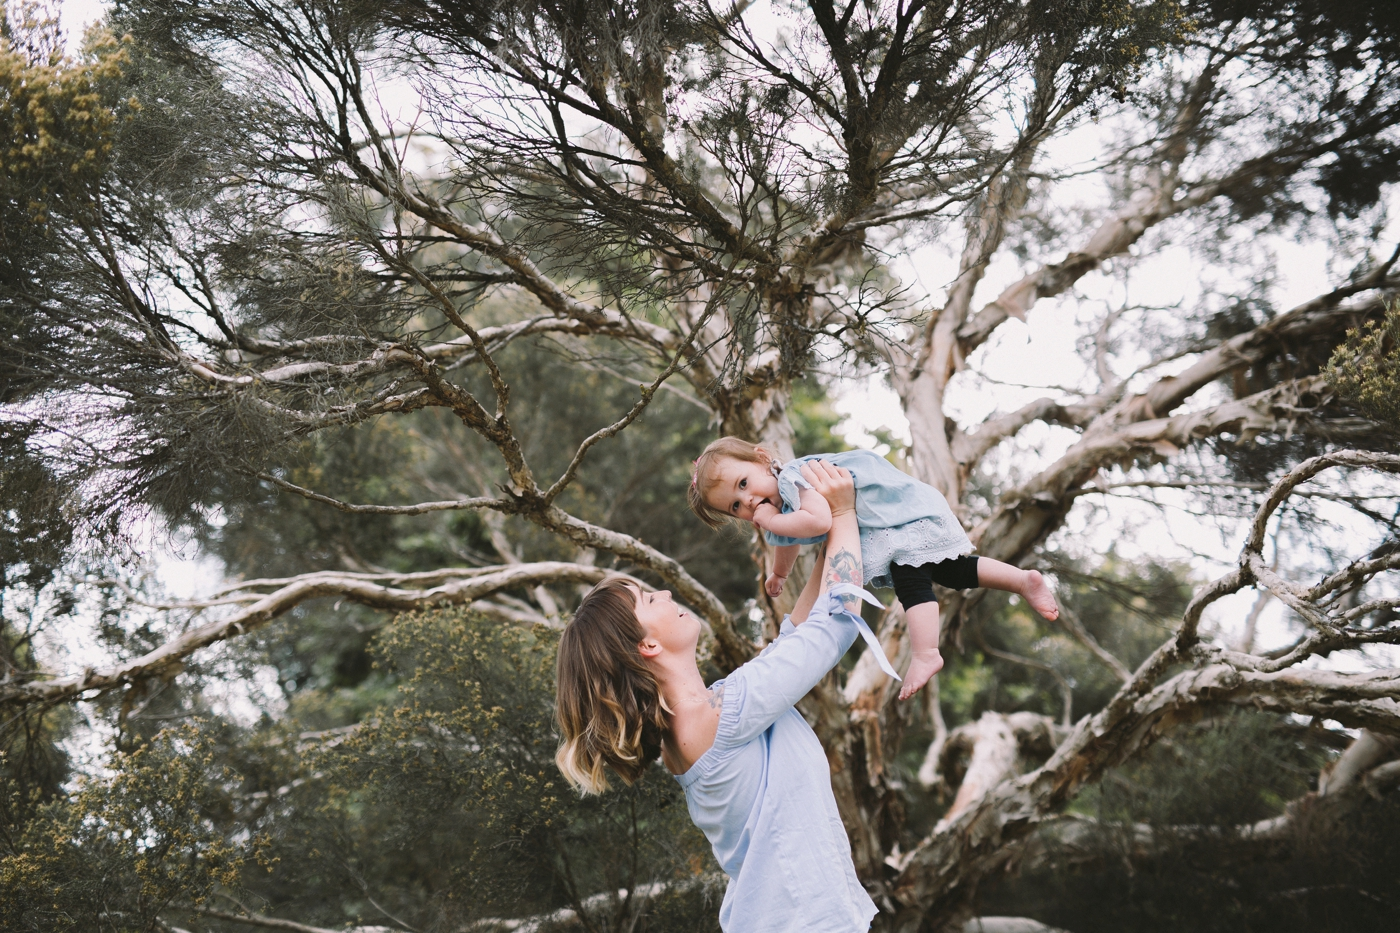 Caitlin and Billie - Natural family photographer in Adelaide - Candid and beautiful family photography in Adelaide - www.katherineschultzphotography.com